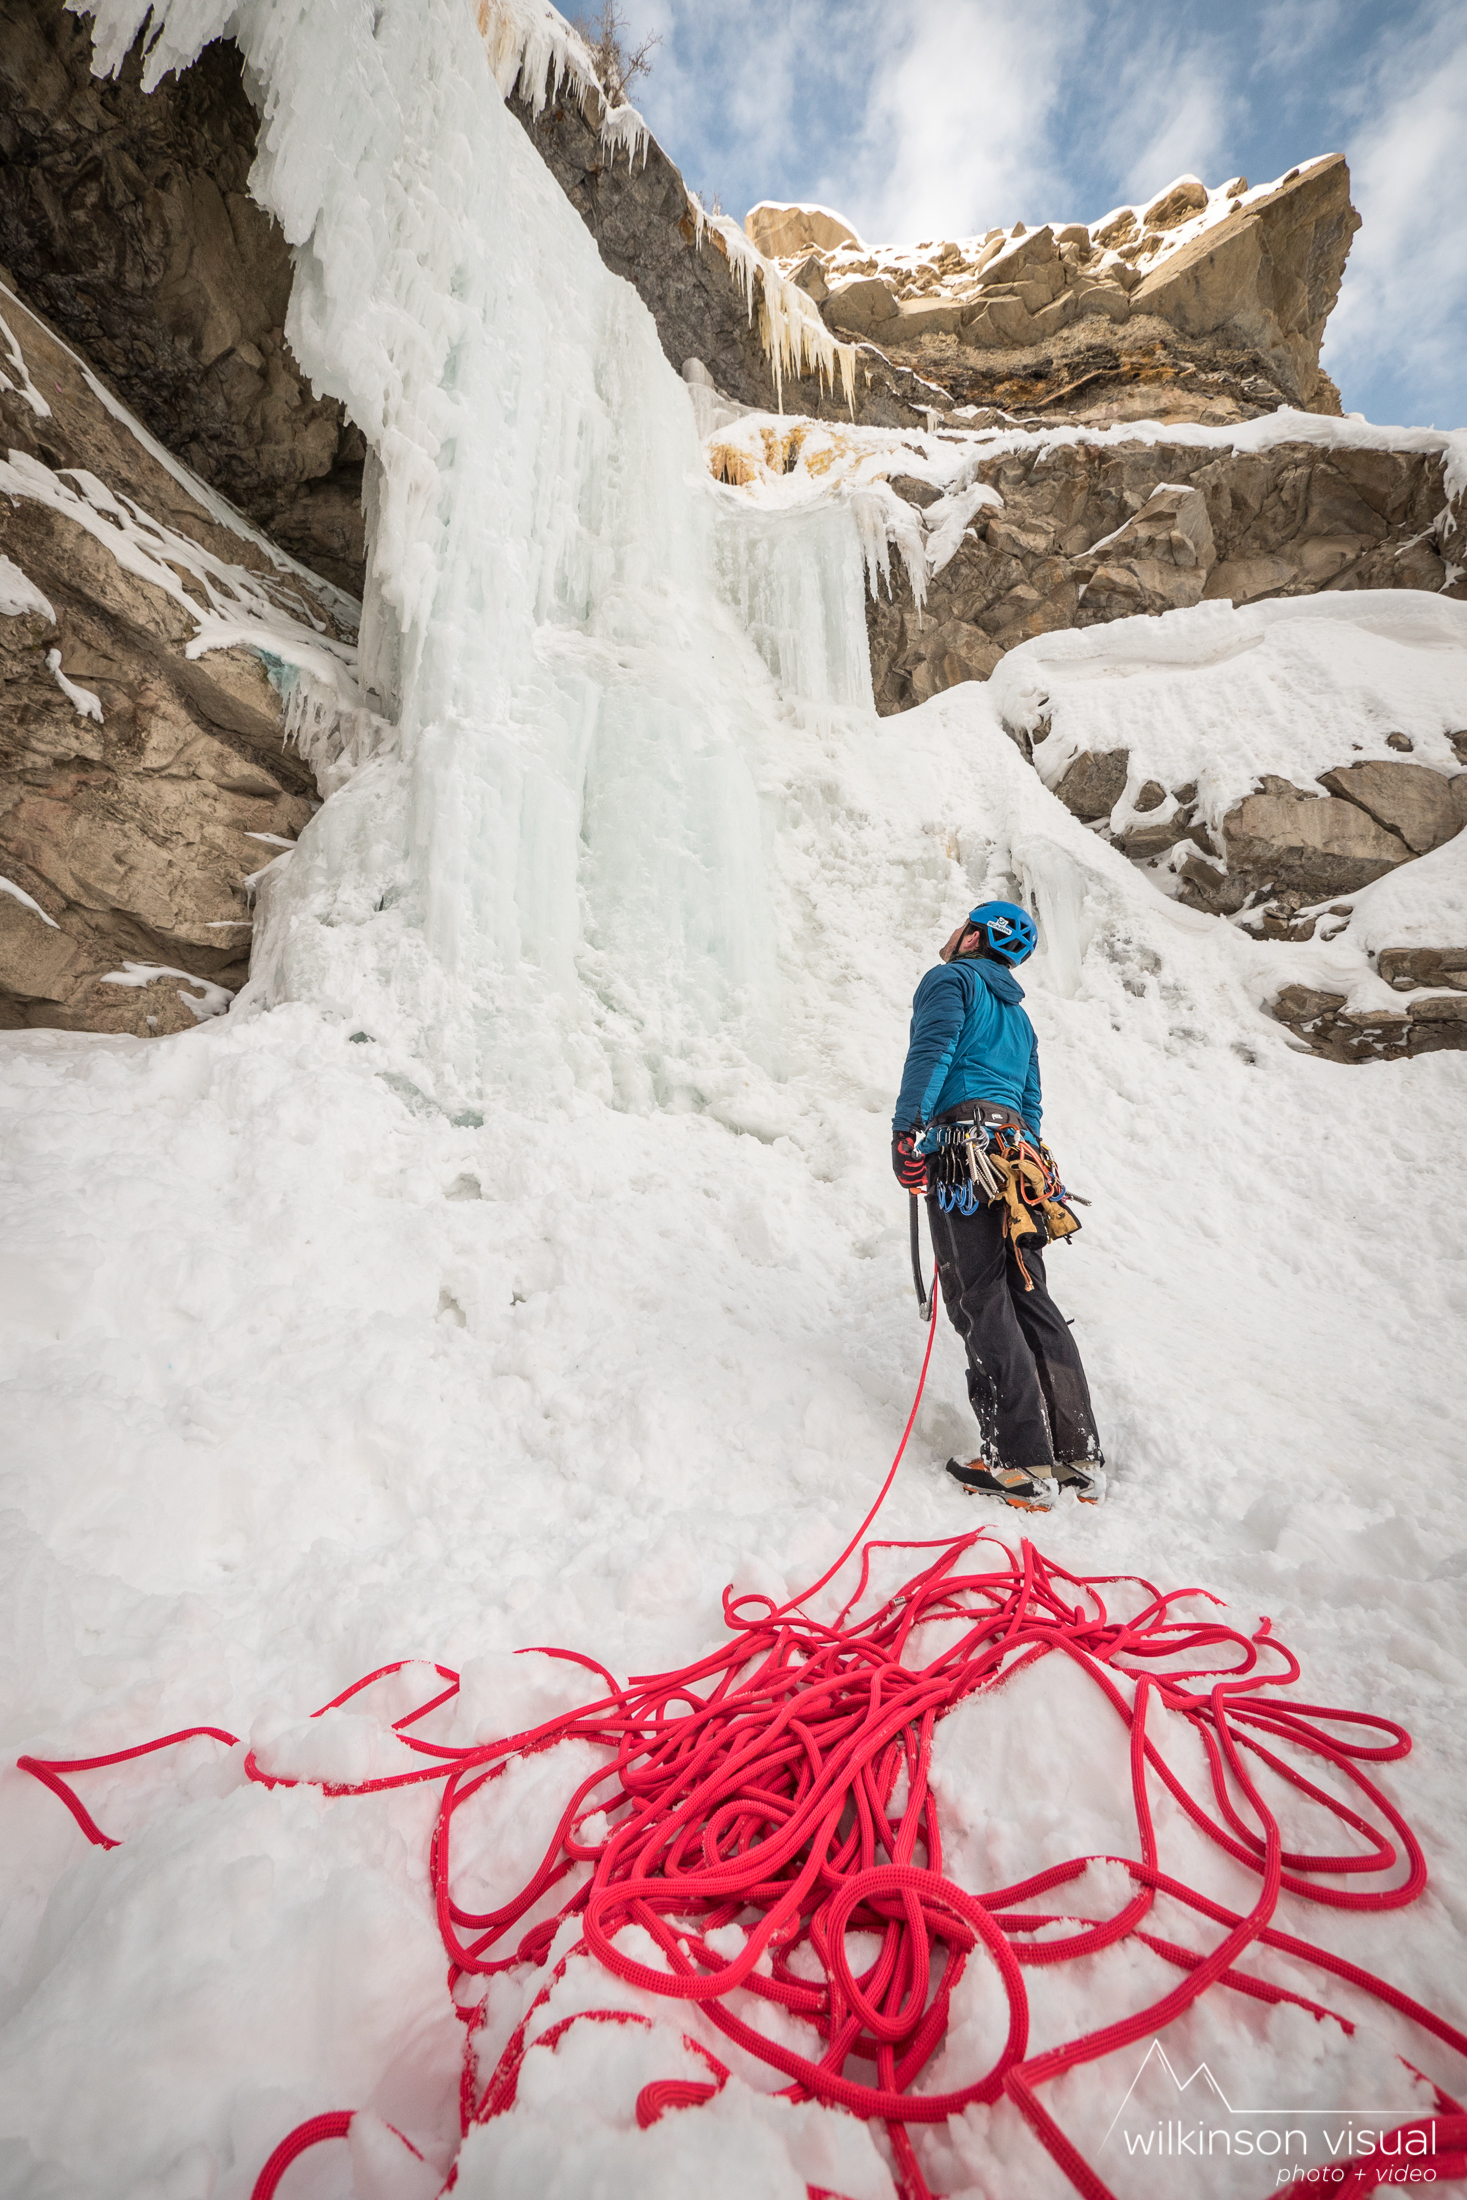 """Heath Rowland plans his line up the """"Pricicle"""" in Utah. Rope shown is Beal brand."""